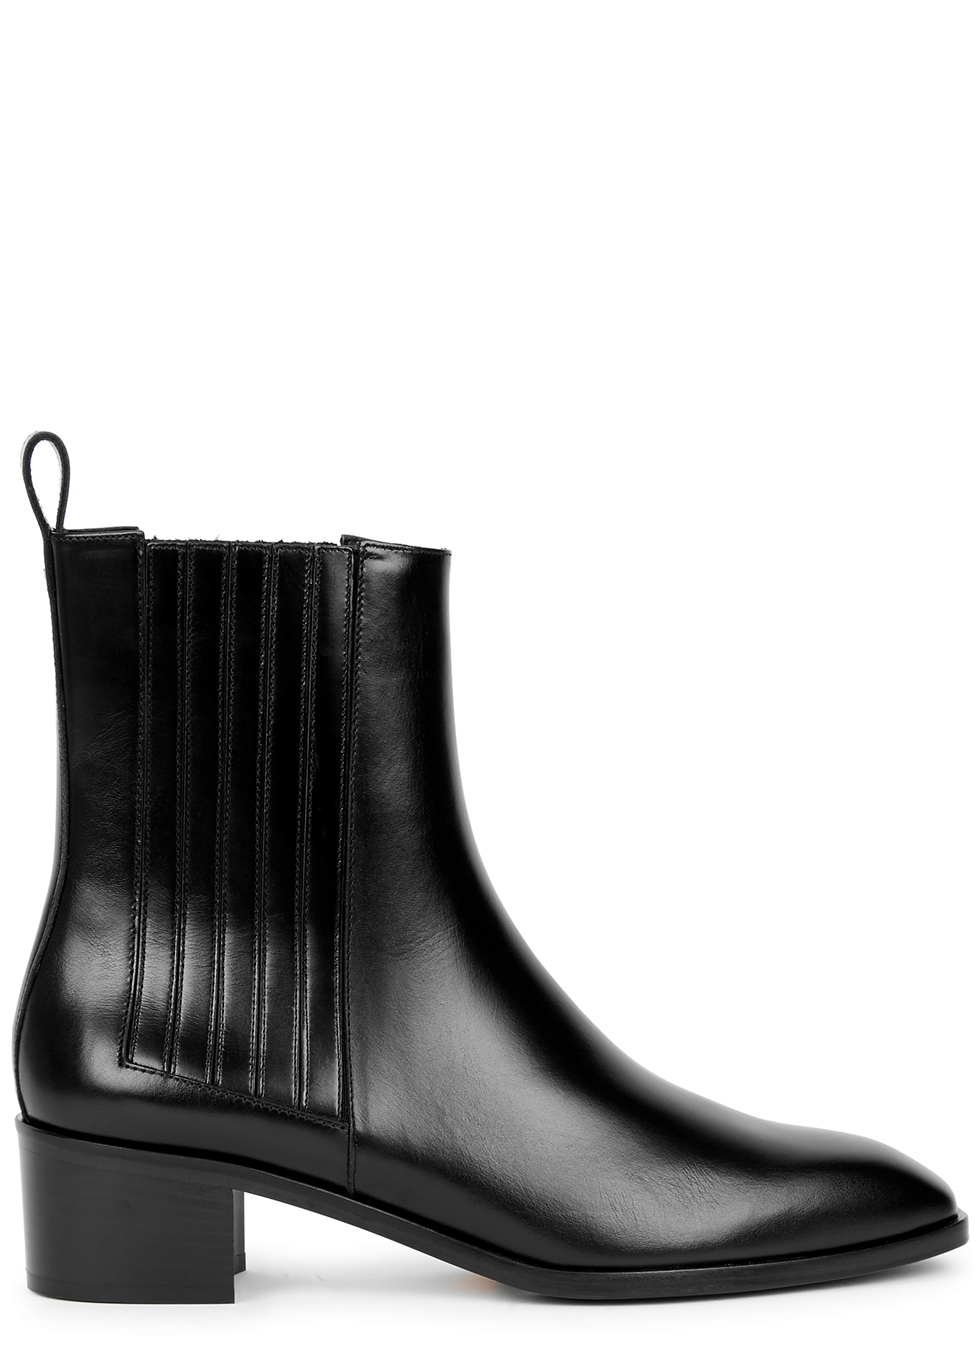 Neil 40 black leather Chelsea boots